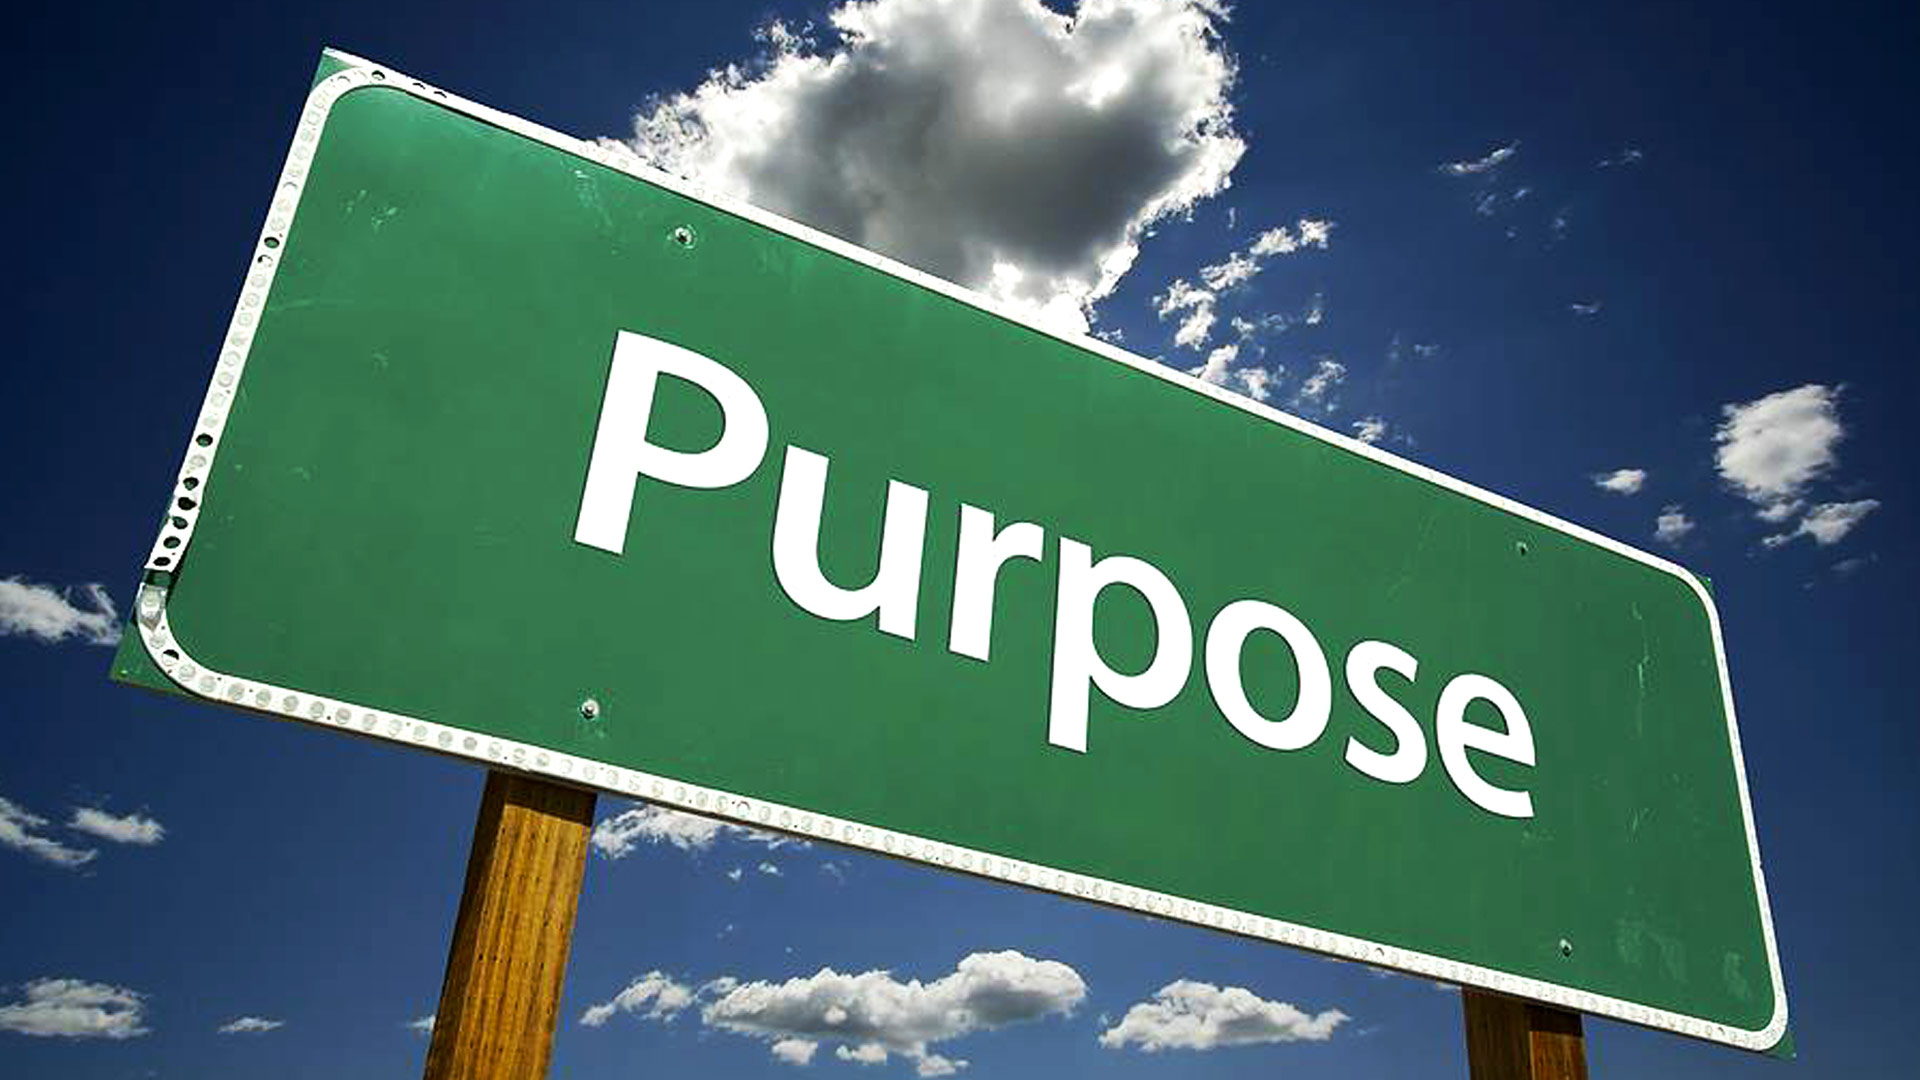 The purpose of life is a life of purpose!!